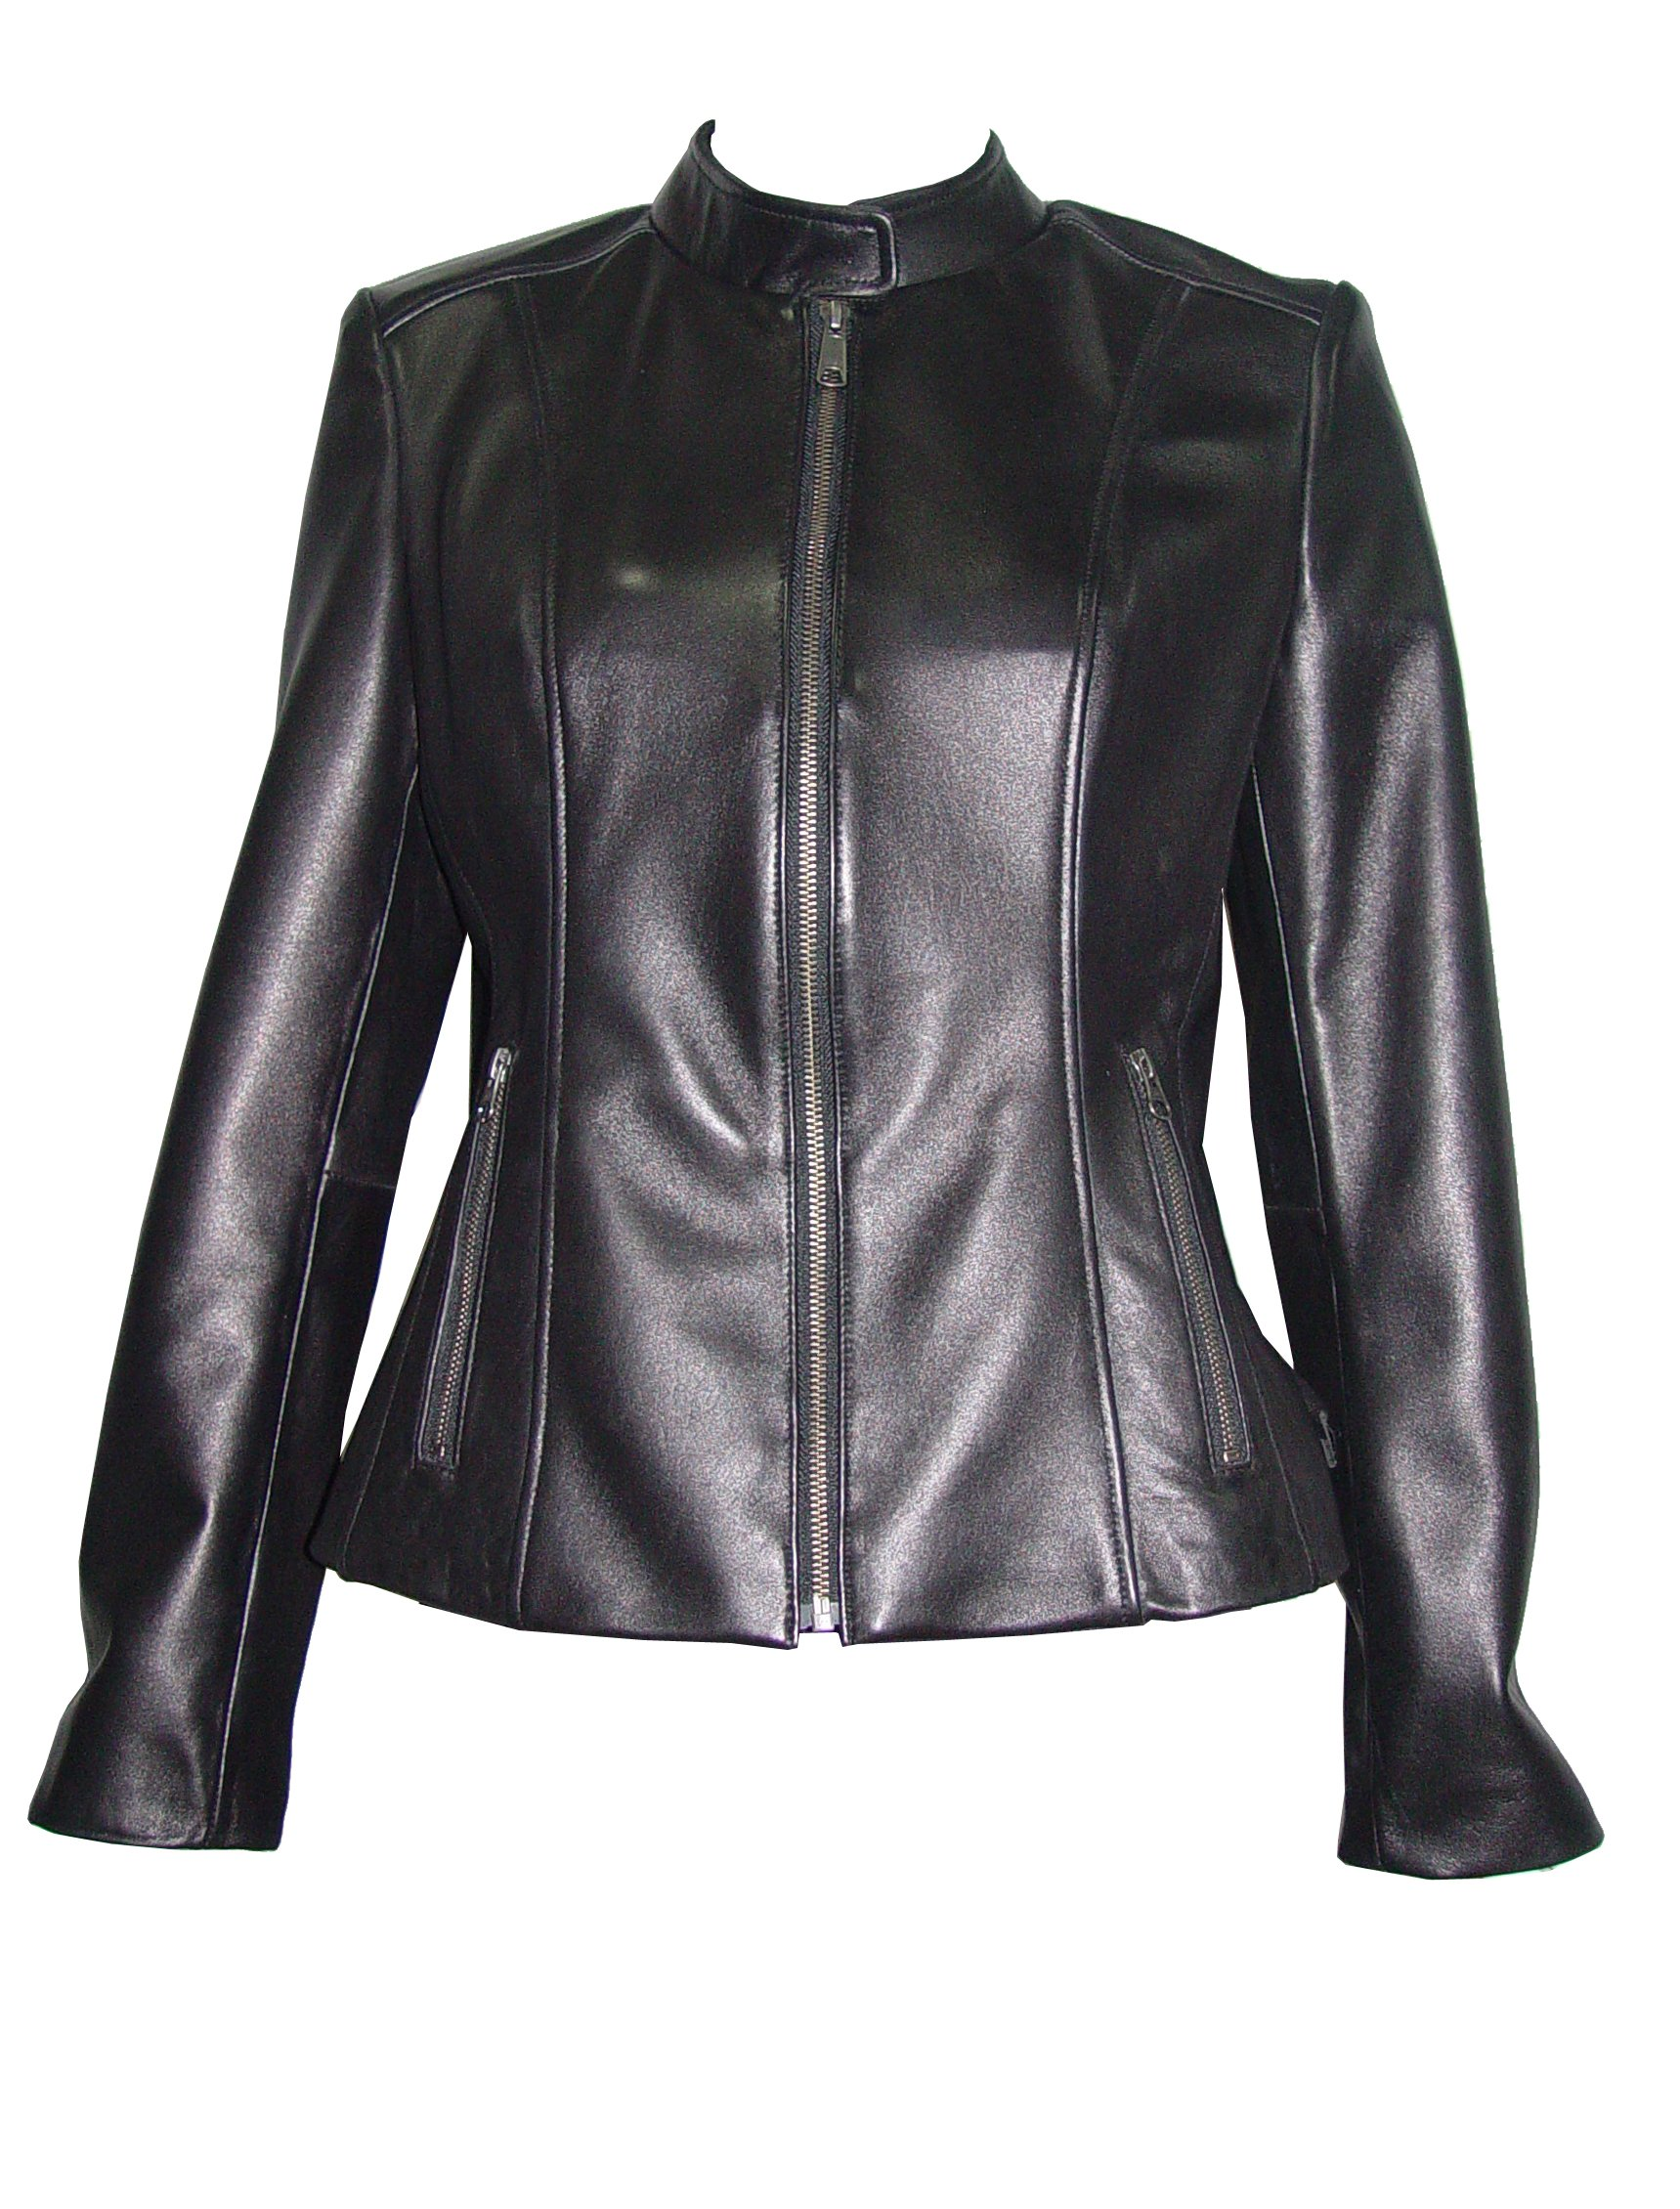 Nettailor 4062 Leather Moto Jackets Womens Fashion Soft Genuine Lamb